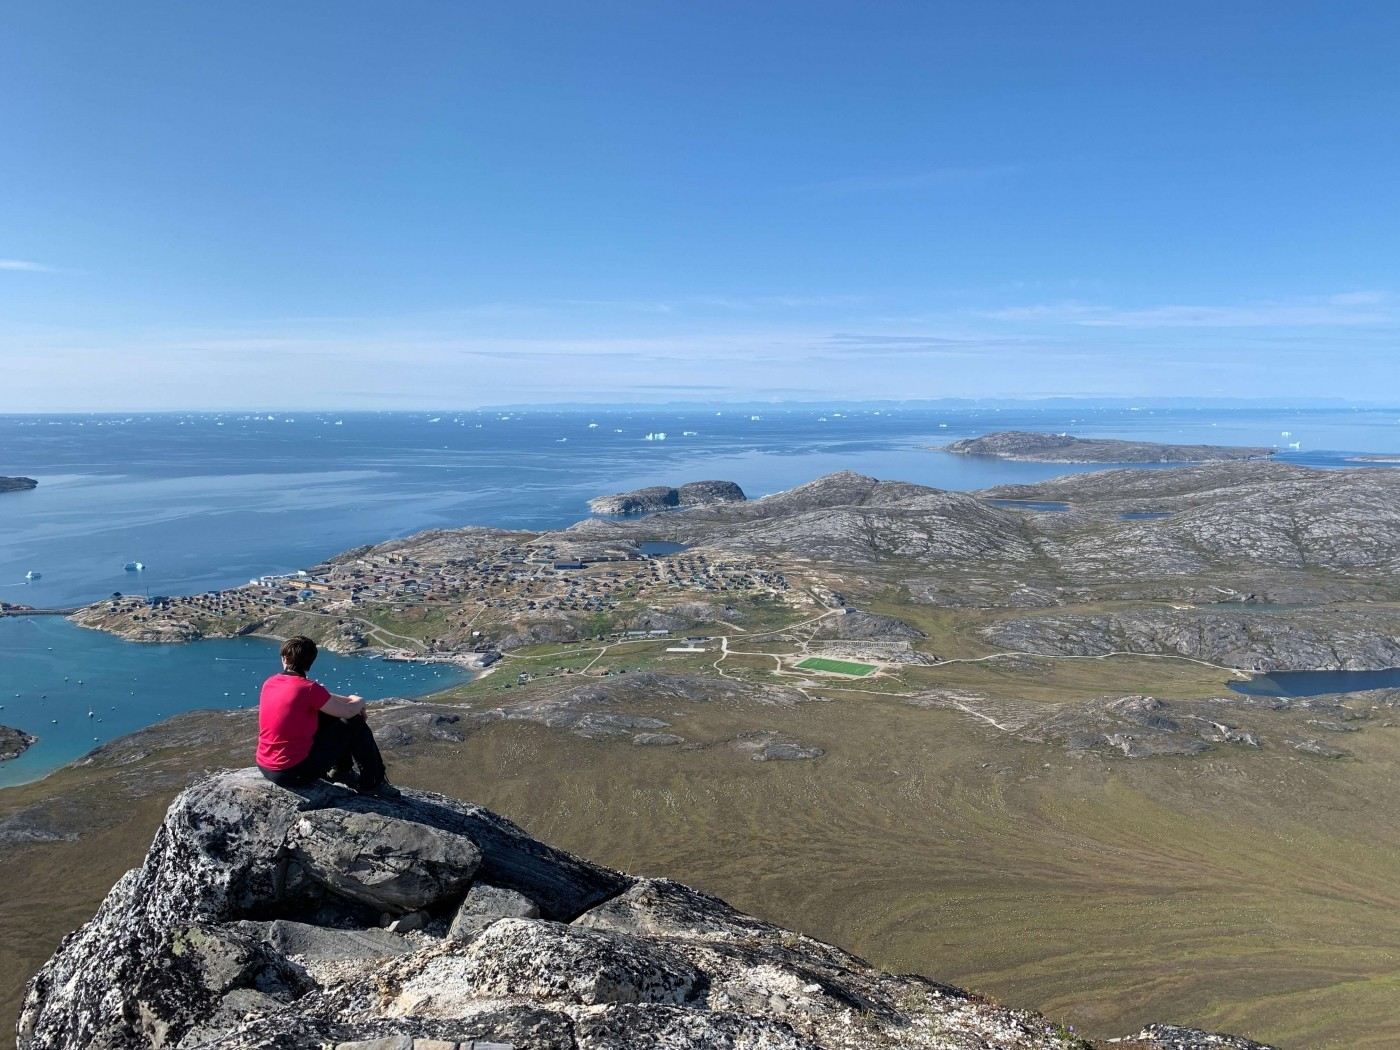 Hiker sitting on a rock and enjoying the view over Disko Bay. Photo by Espen Andersen, Visit Greenland